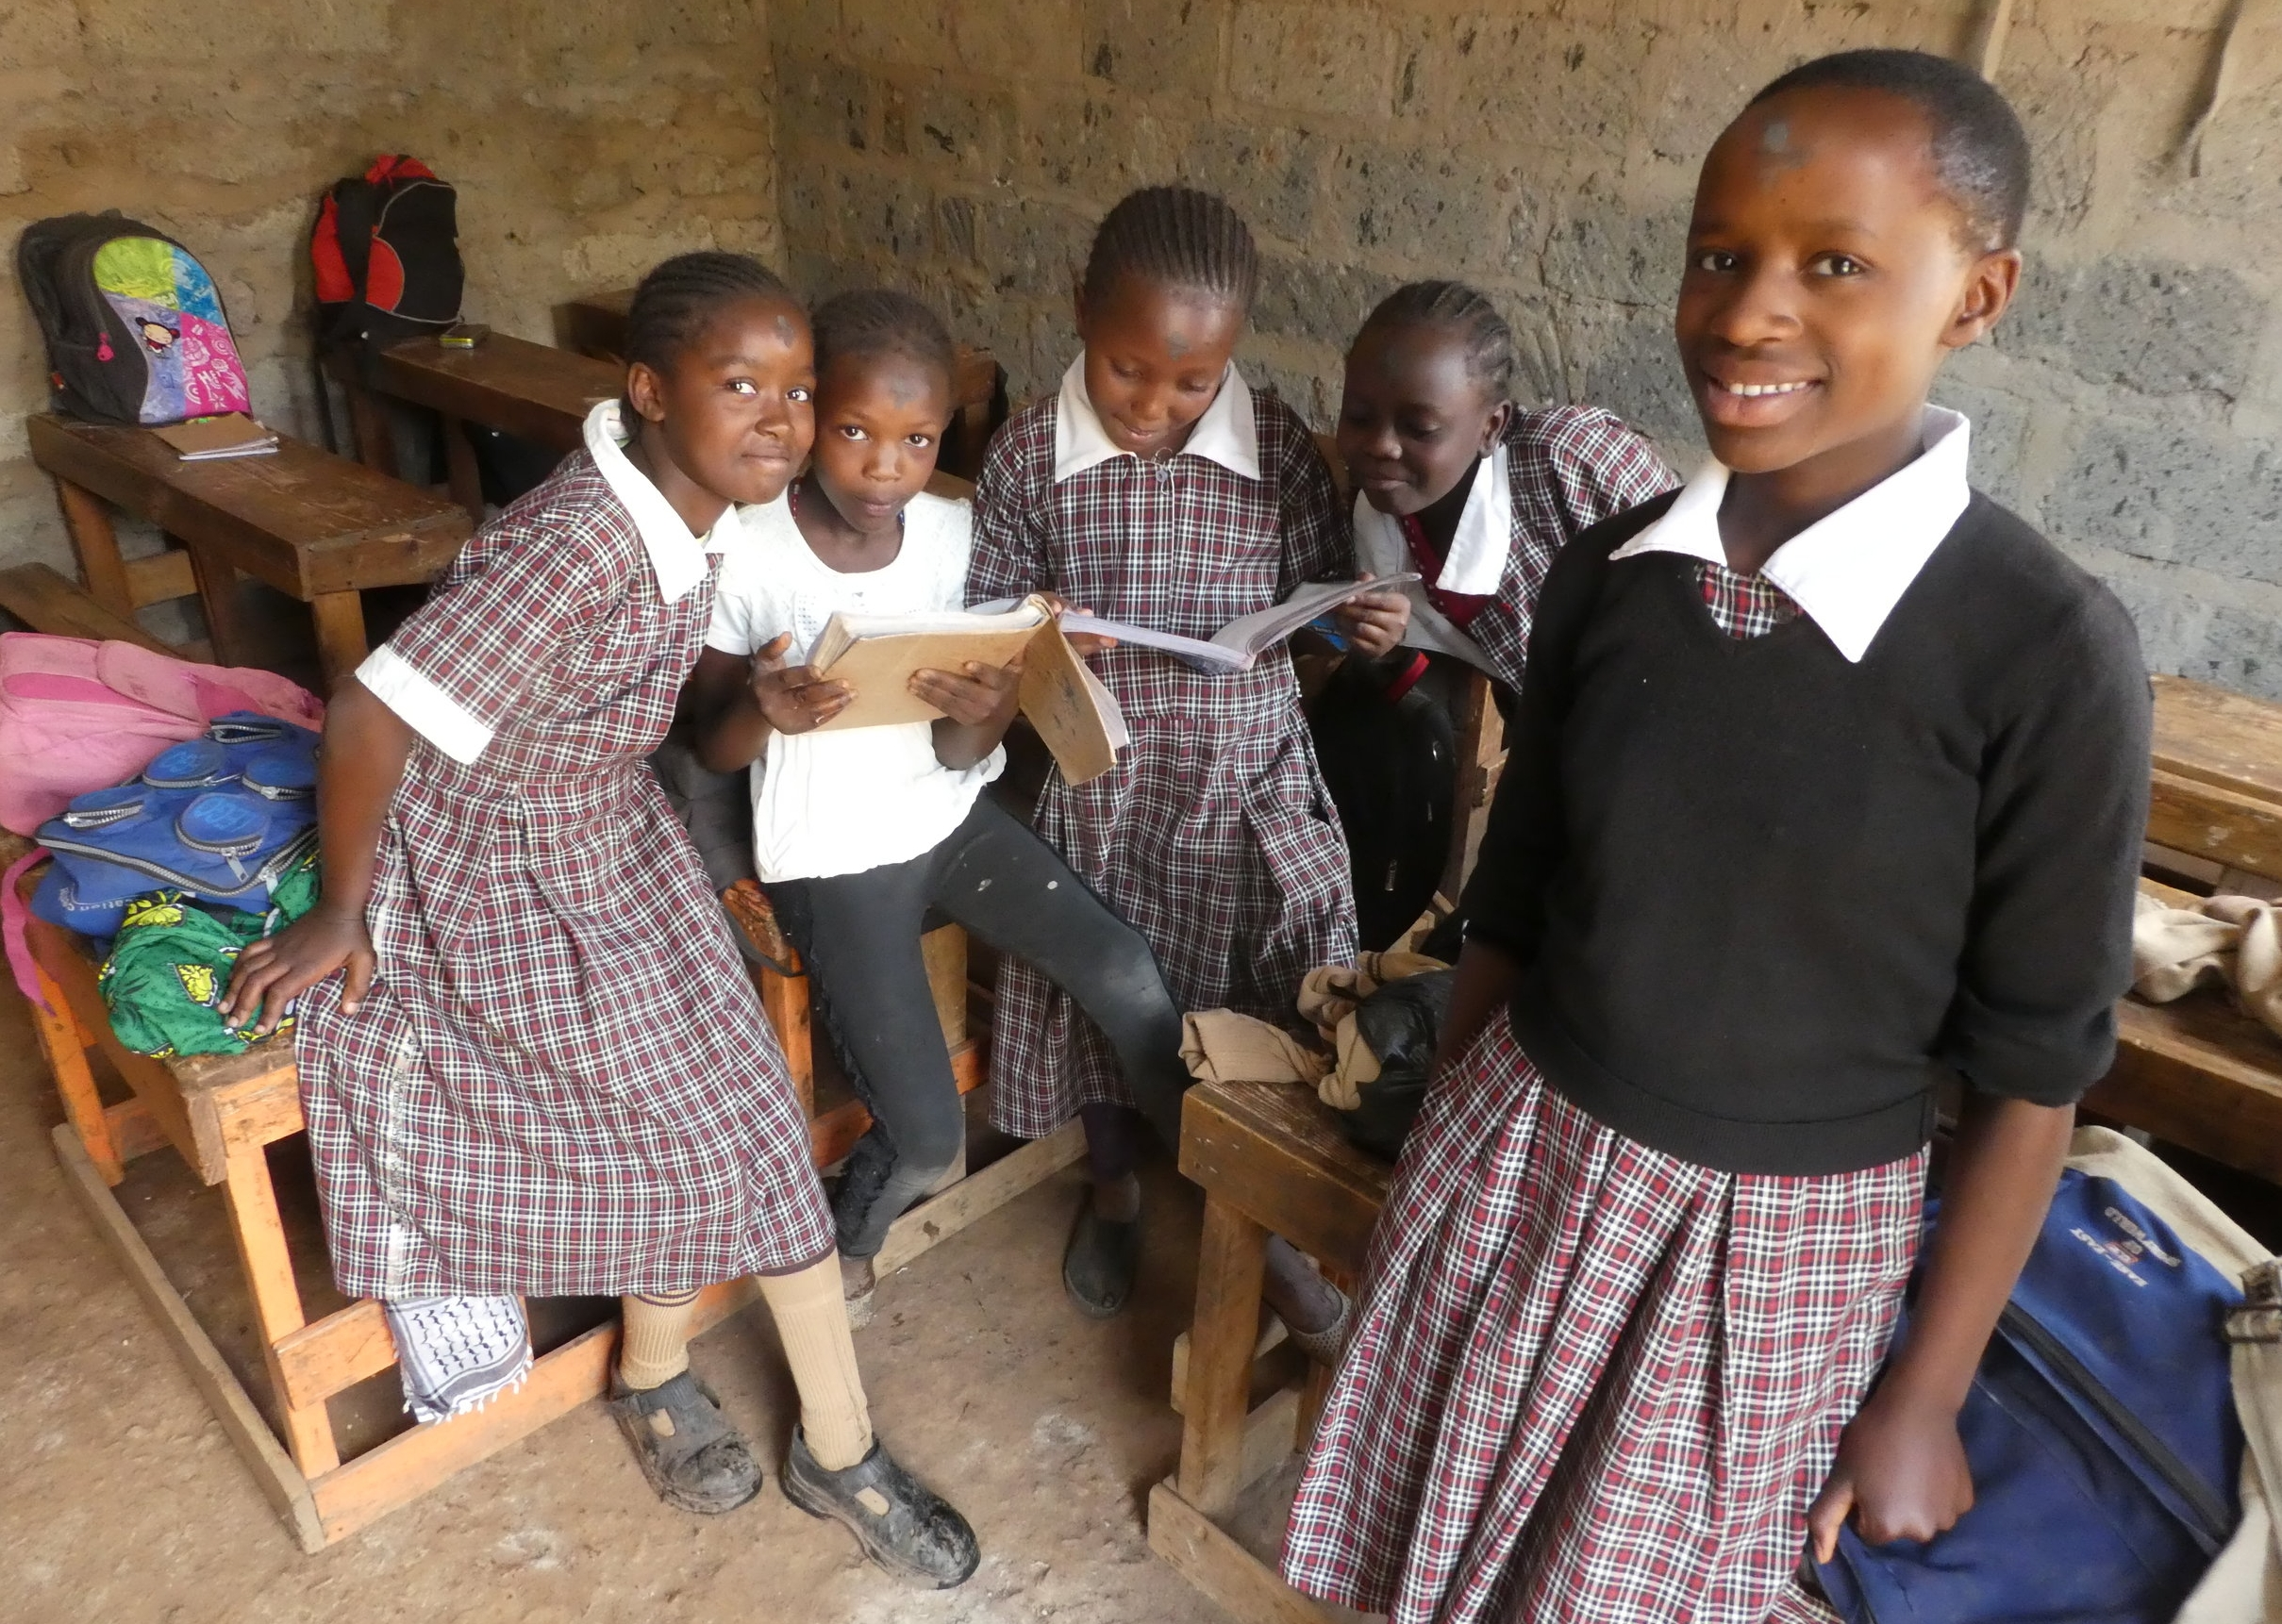 Girls from Mathare, Kenya, wearing their school uniforms.Thanks to your support, the Foundation has provided major support for their school, Mamma Africa.